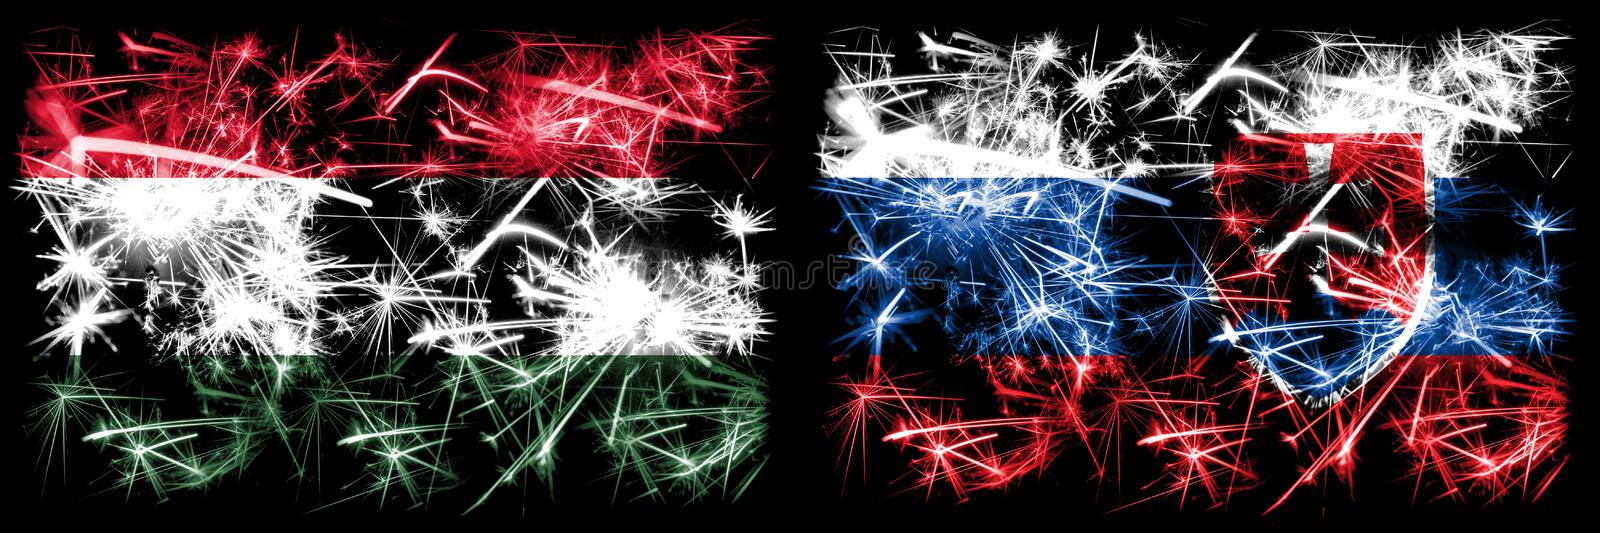 Hungary, Hungarian, Slovakia, Slovakian, flip sparkling fireworks concept and idea flags stock illustration